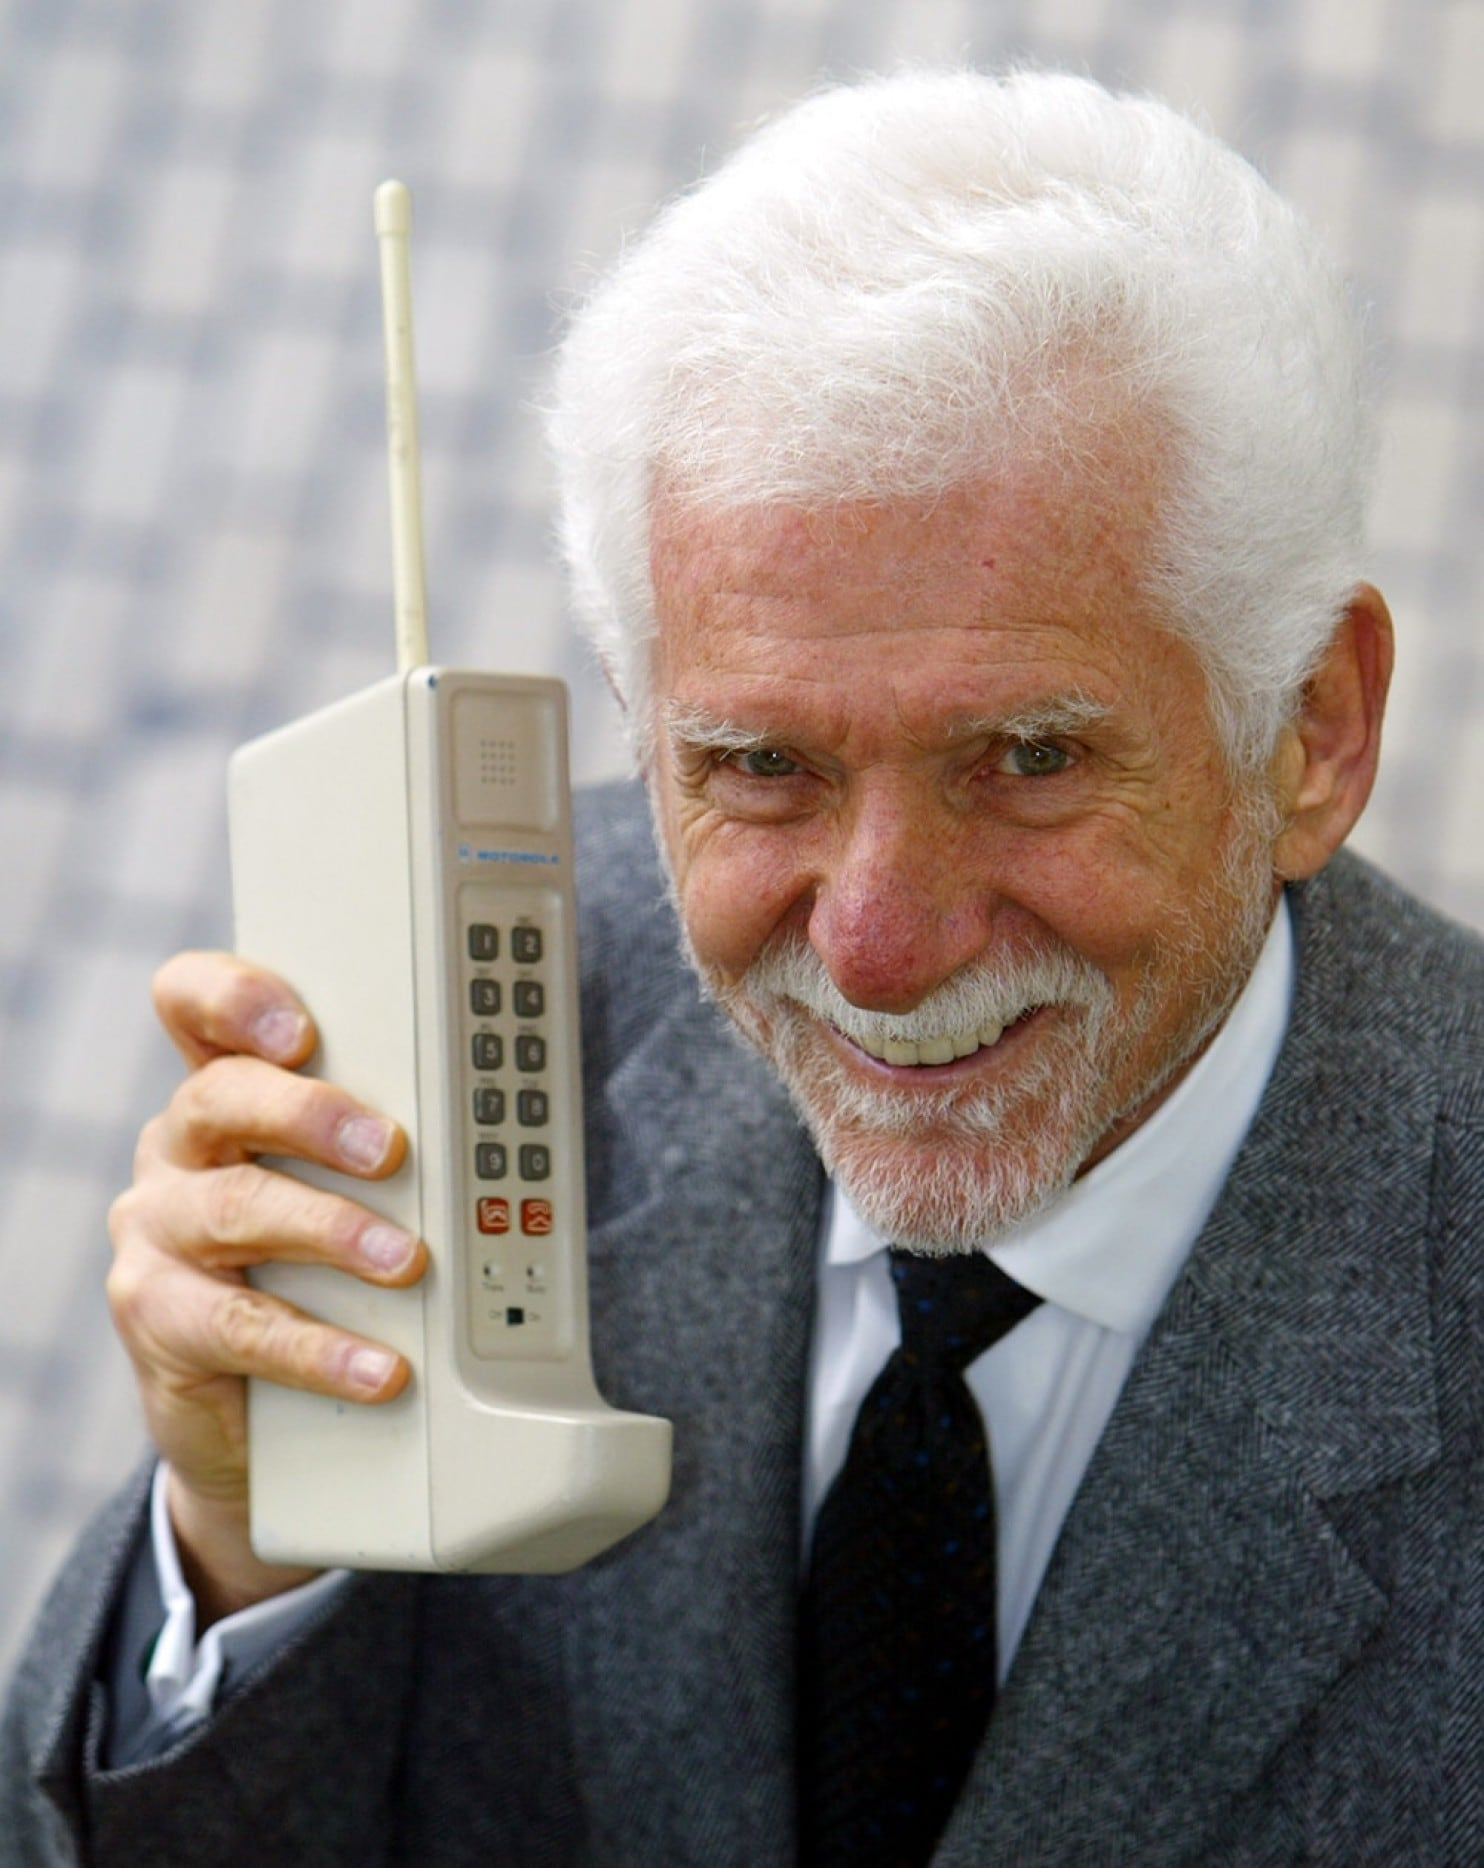 the invention of cell phone changes Change quickly access  martin cooper — credited as the inventor of the cellphone — made the world's first public call from a mobile phone,.